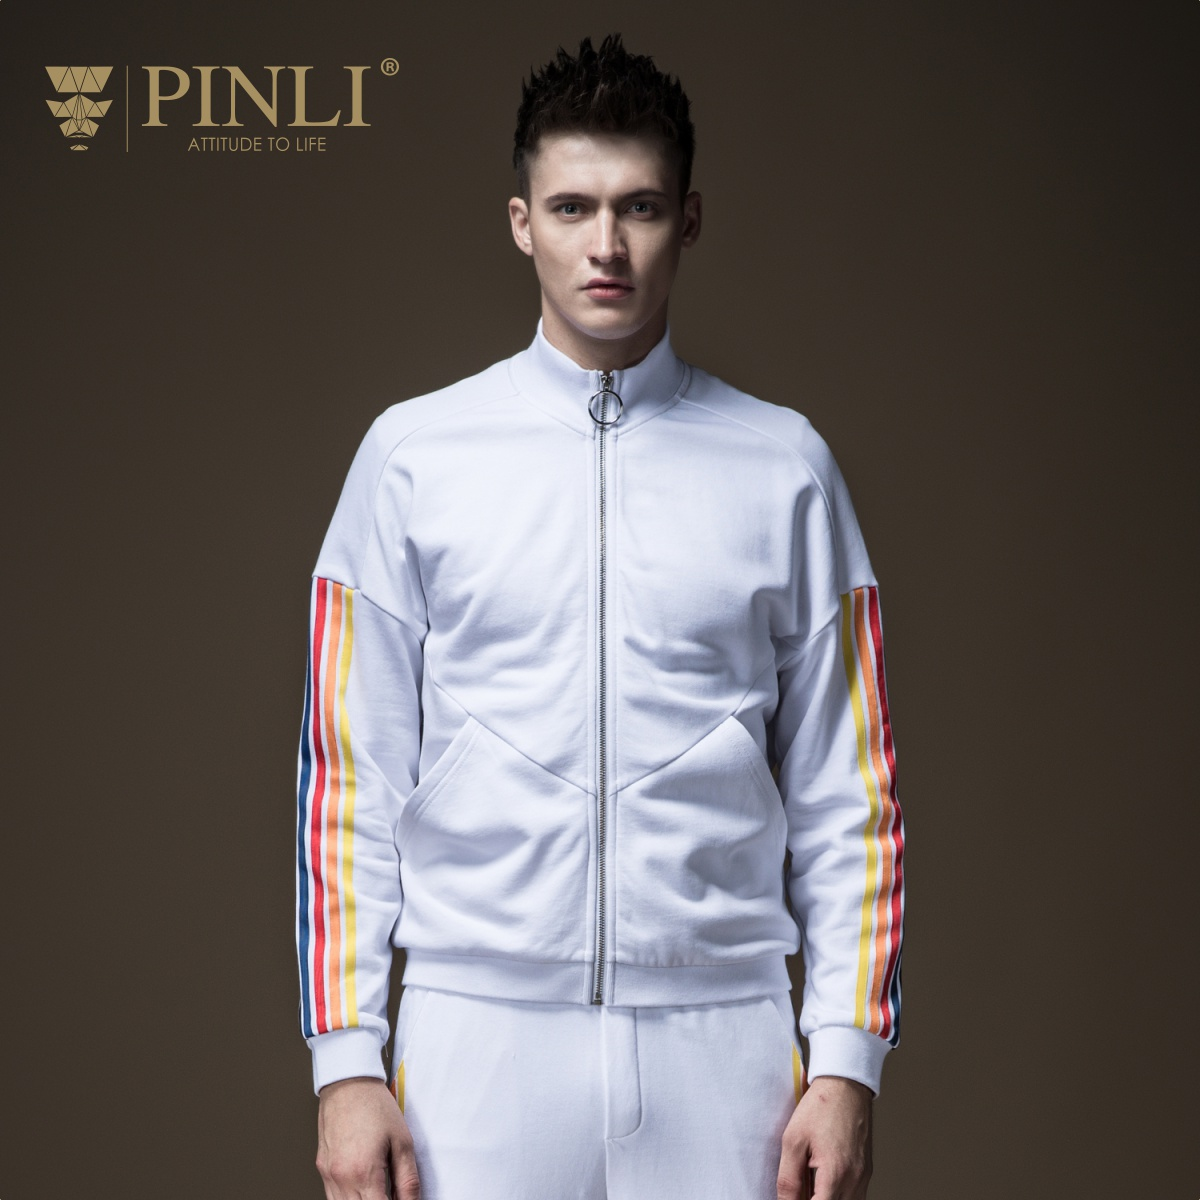 Pinli 2020 Spring New Discount Clearance Slim Mock-neck Hot Sale Sportswear Color Stripes Cotton Casual Men Jacket Sweater Coat